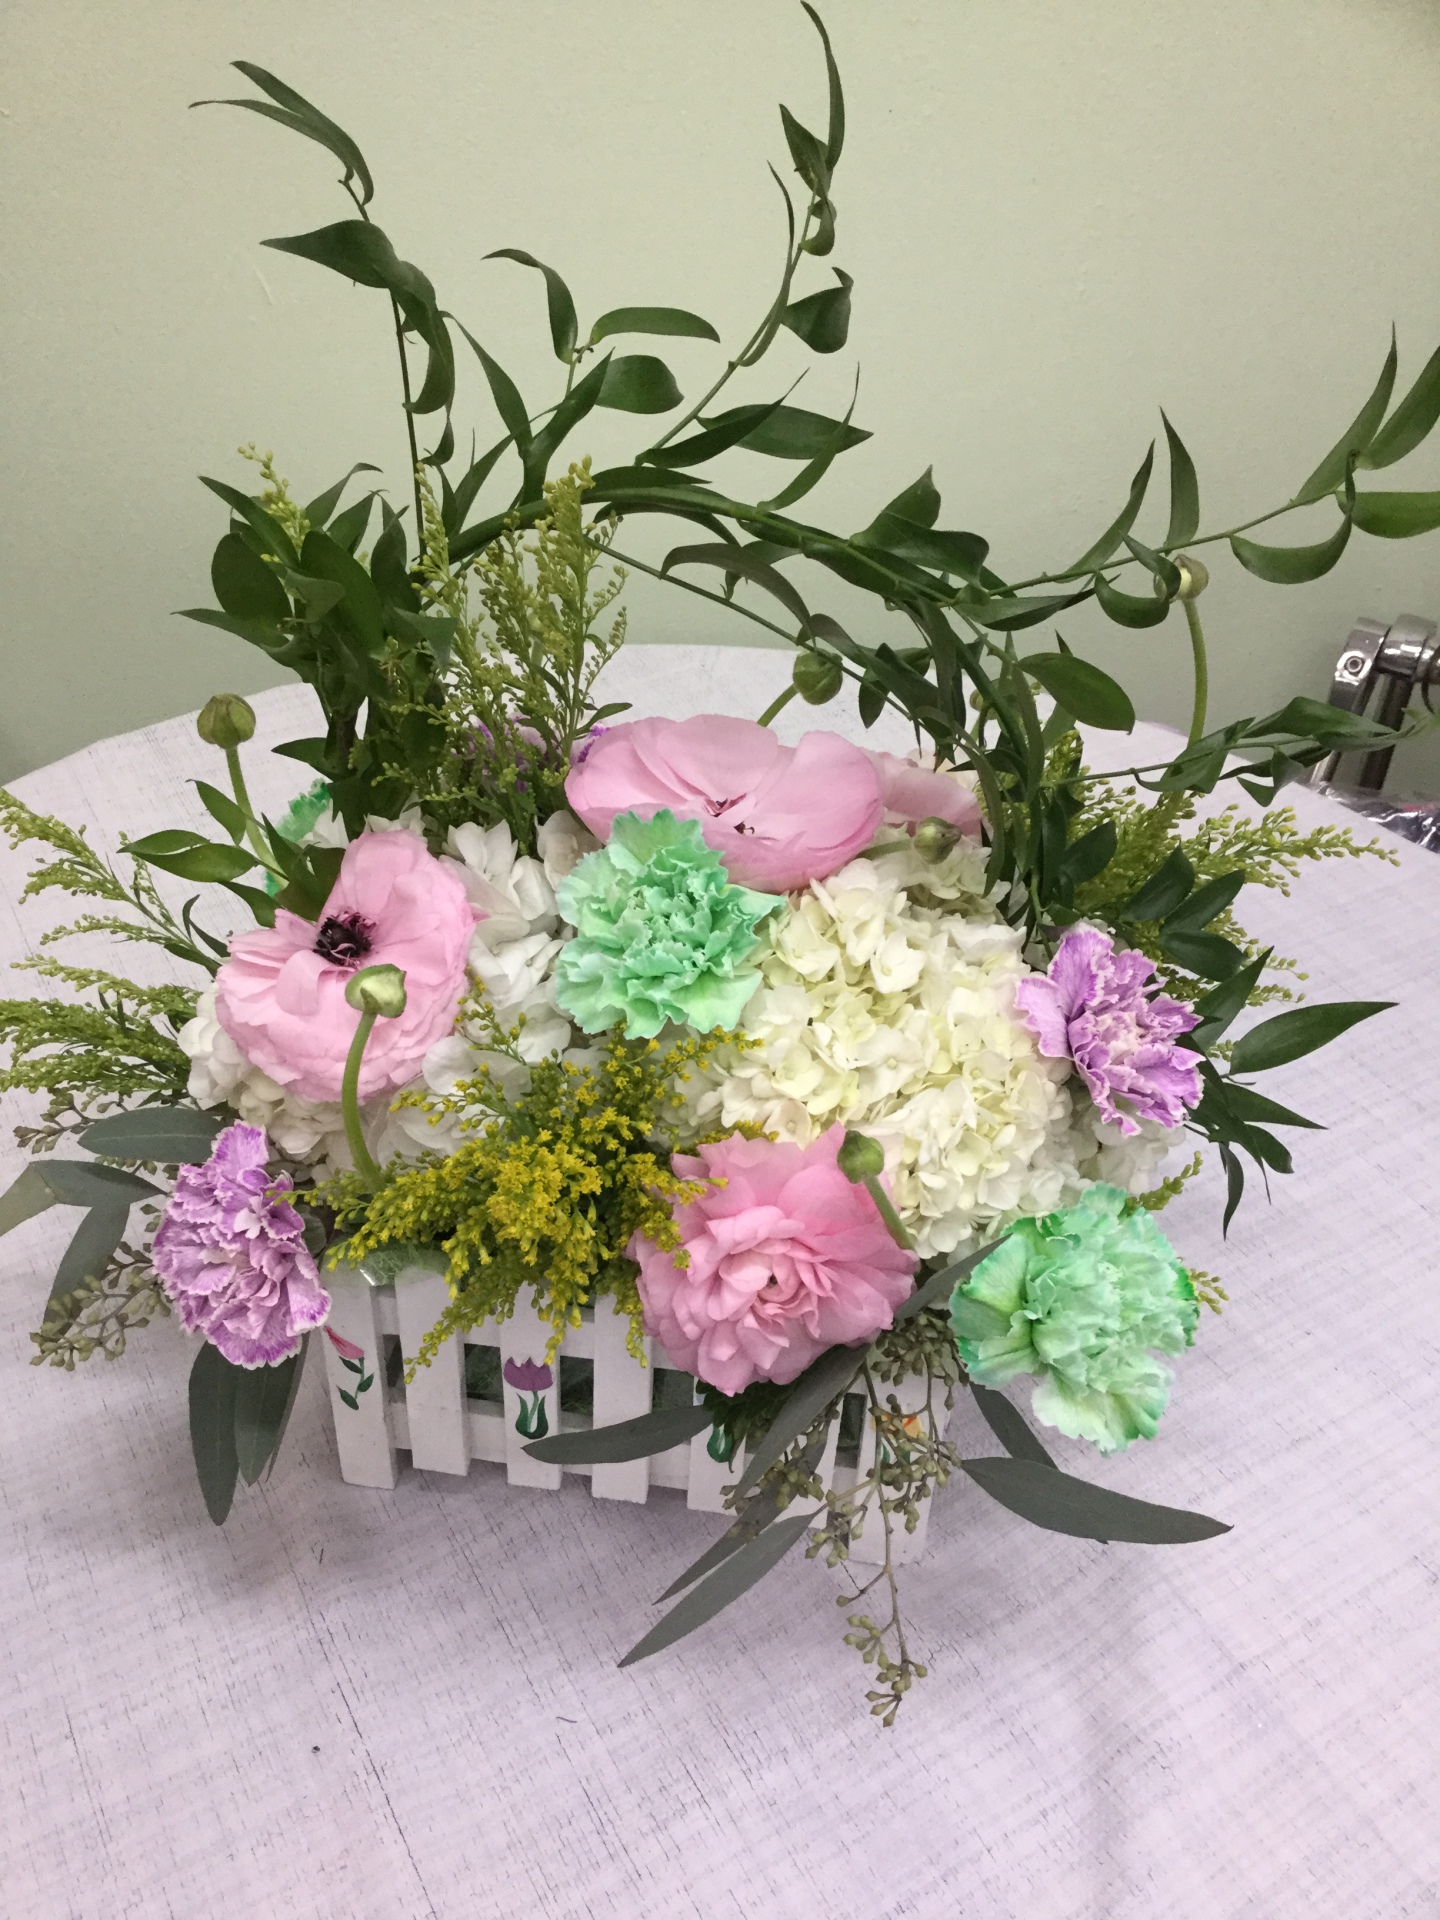 Spring Arrangement in a Basket